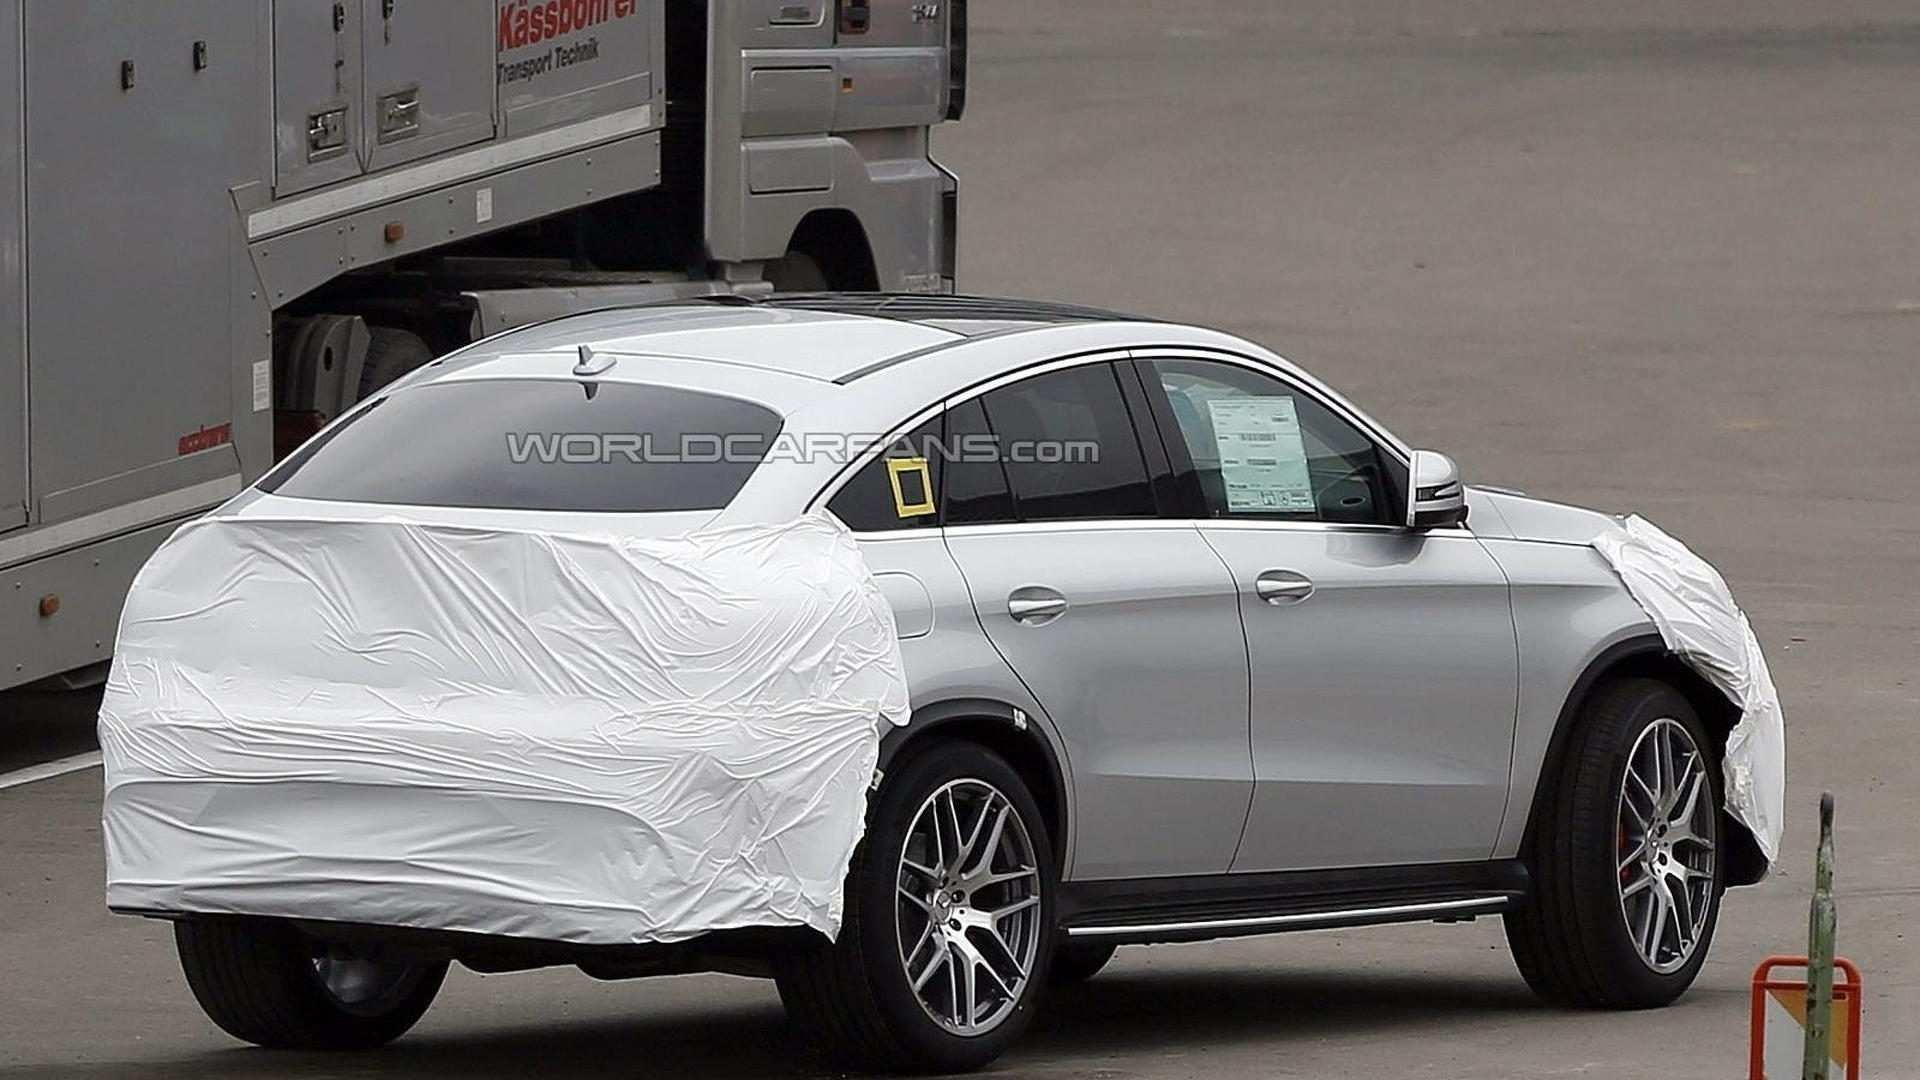 92 All New Mercedes 2019 Gle Coupe Release New Concept by Mercedes 2019 Gle Coupe Release